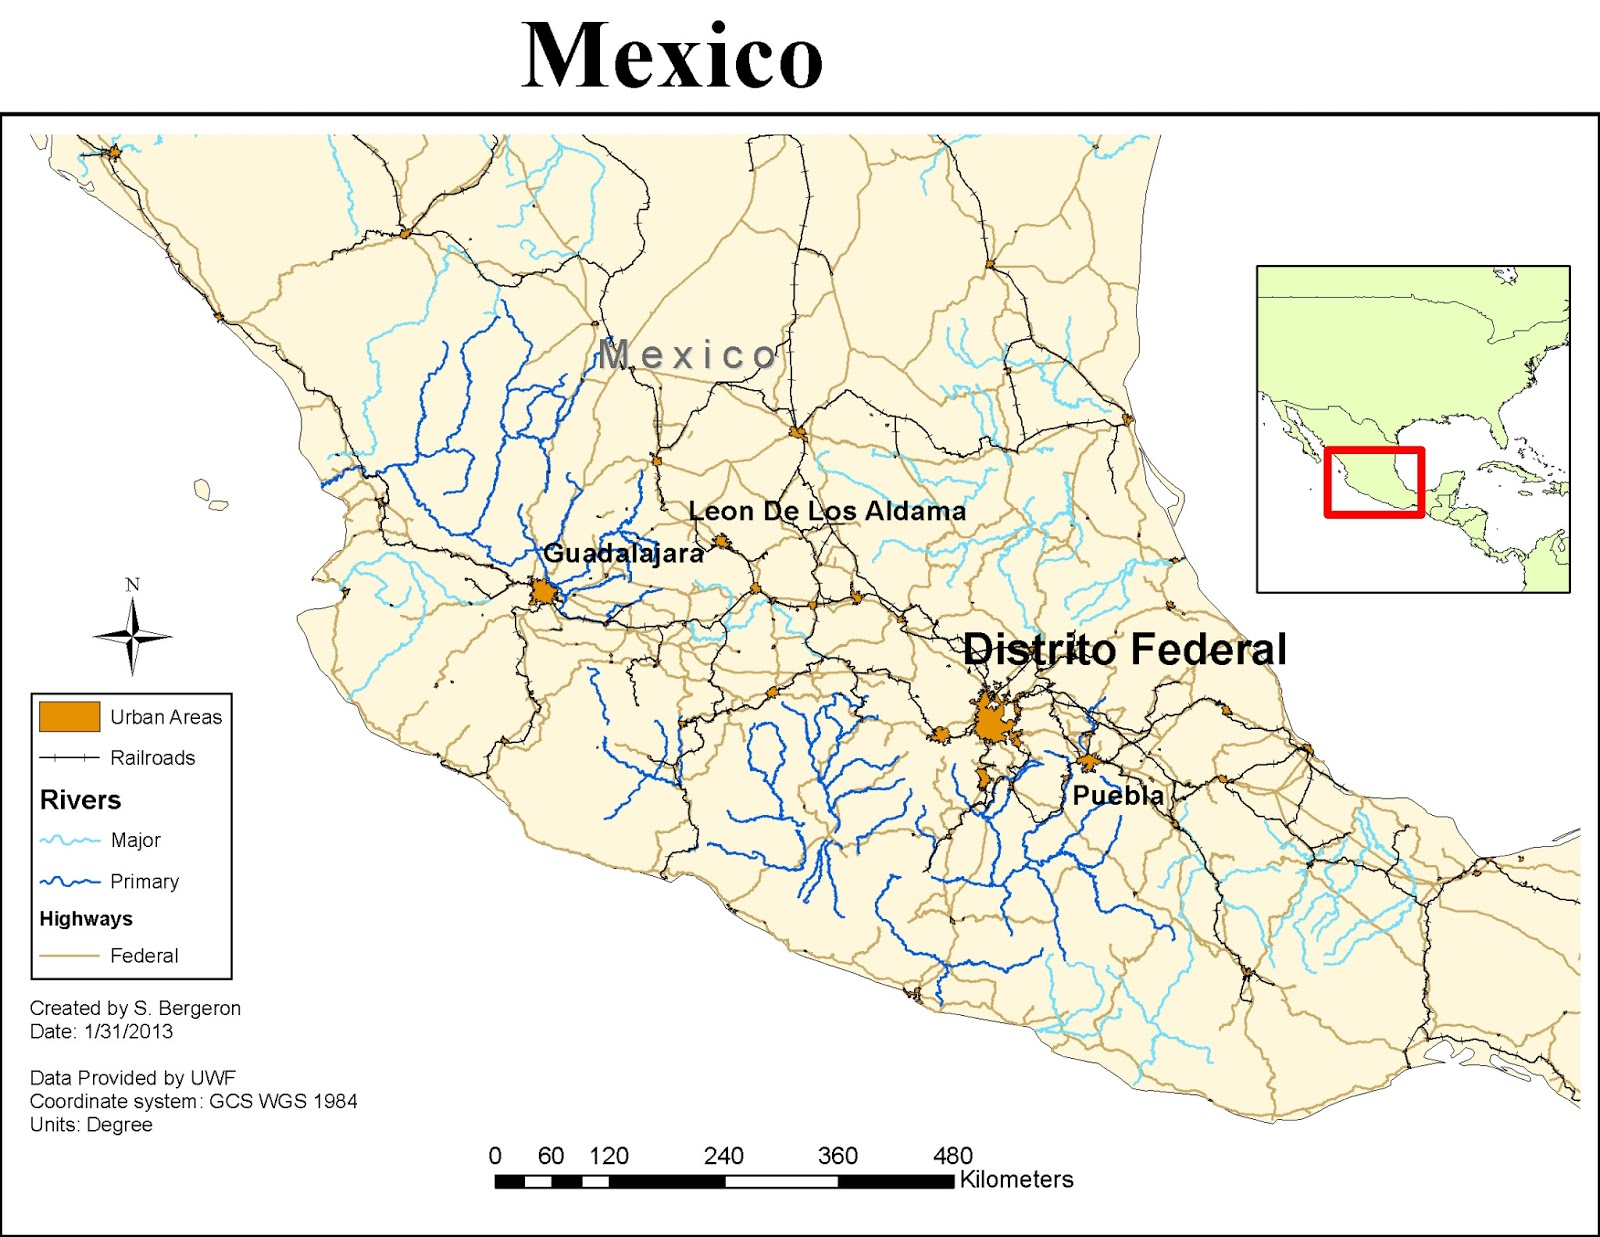 the second map is a map of mexico which focuses on its large cities cities with over one million people and the major transportation features around them